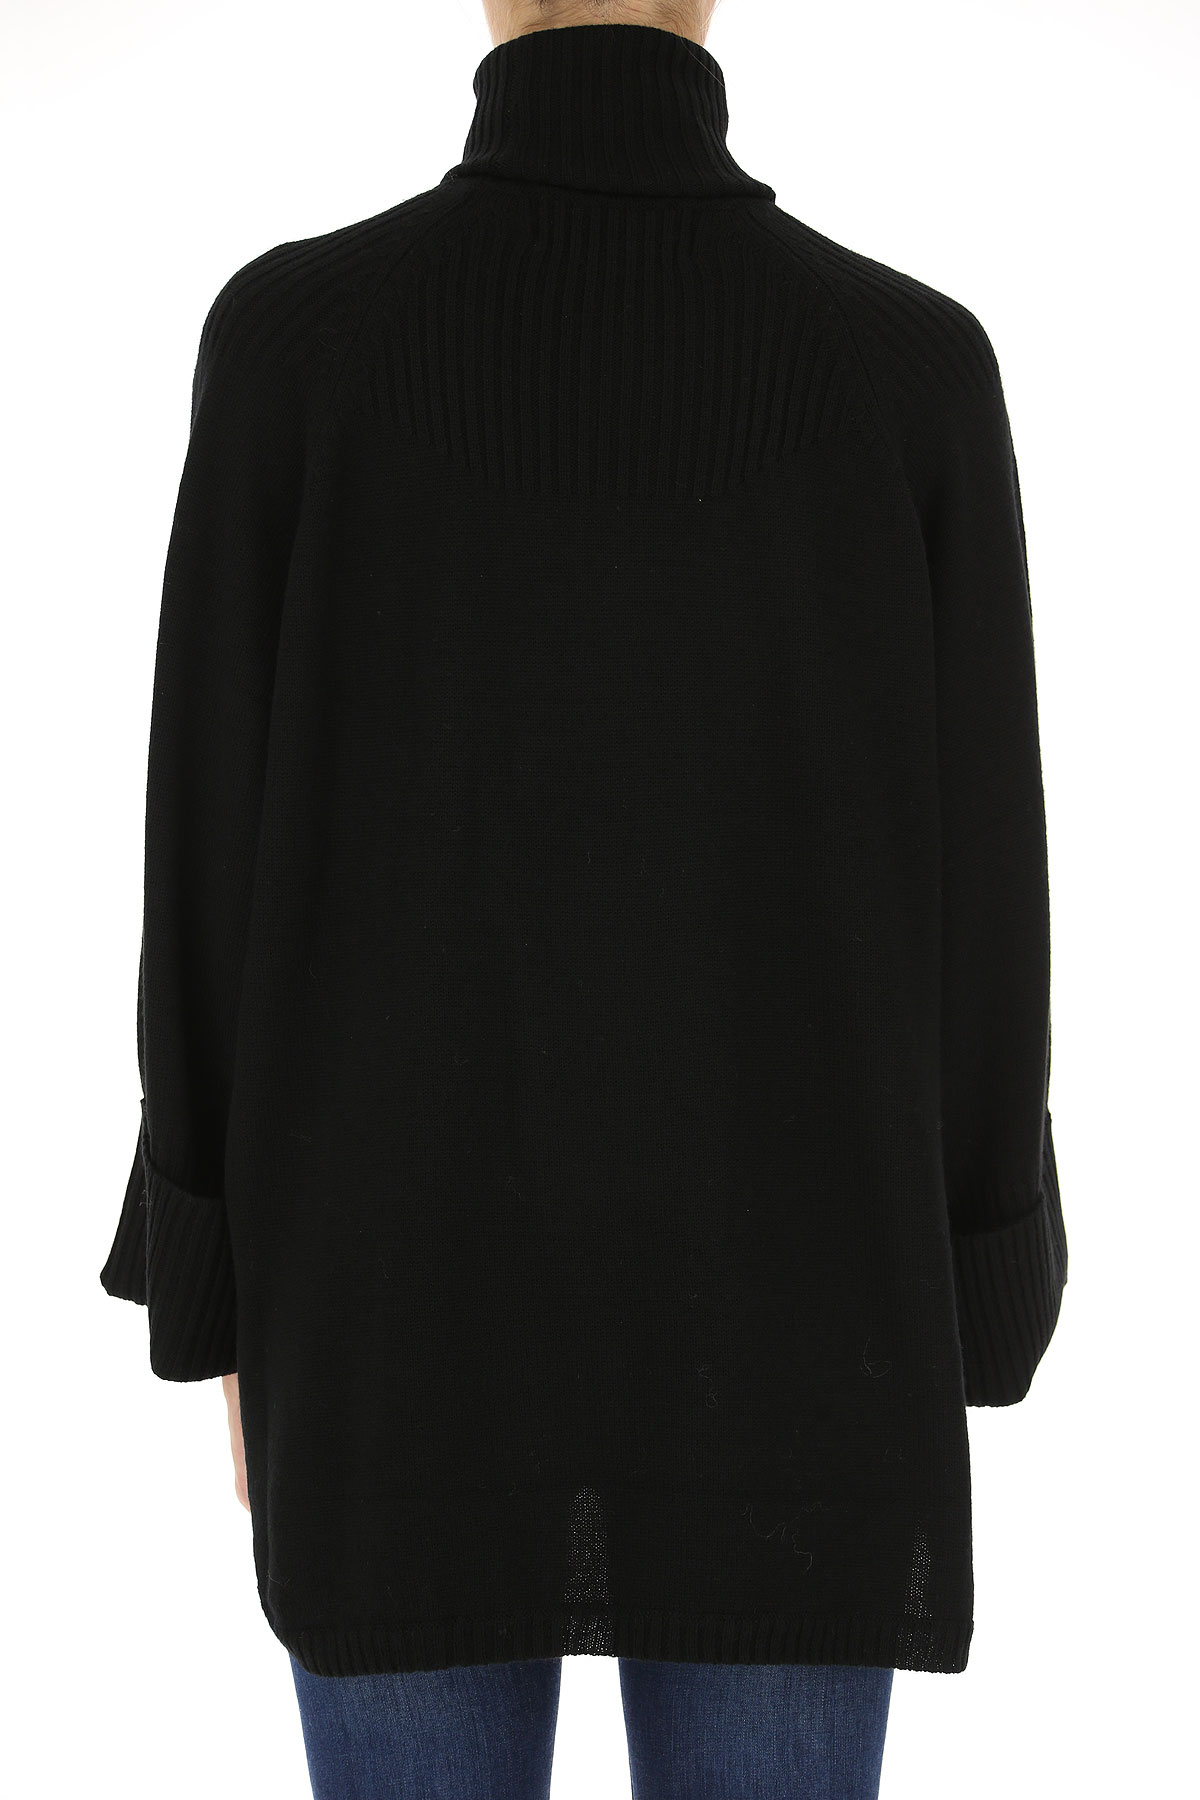 Image of 5 Preview Sweater for Women Jumper, Black, Wool, 2017, 2 4